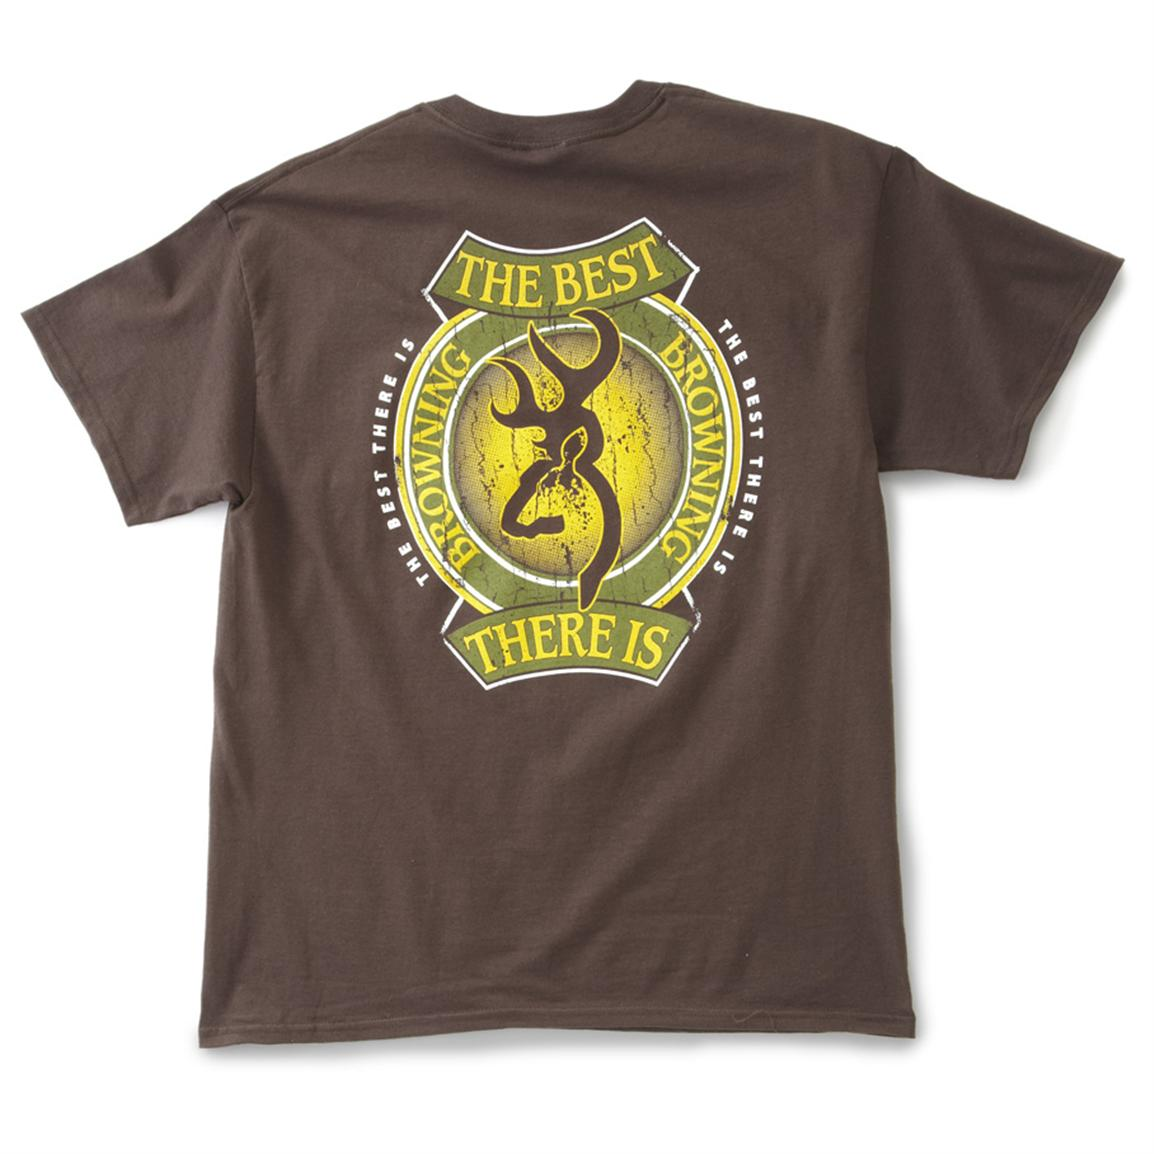 fe4d10438 Men's Browning® Green and Gold Crest Short-sleeved T-shirt - Back view